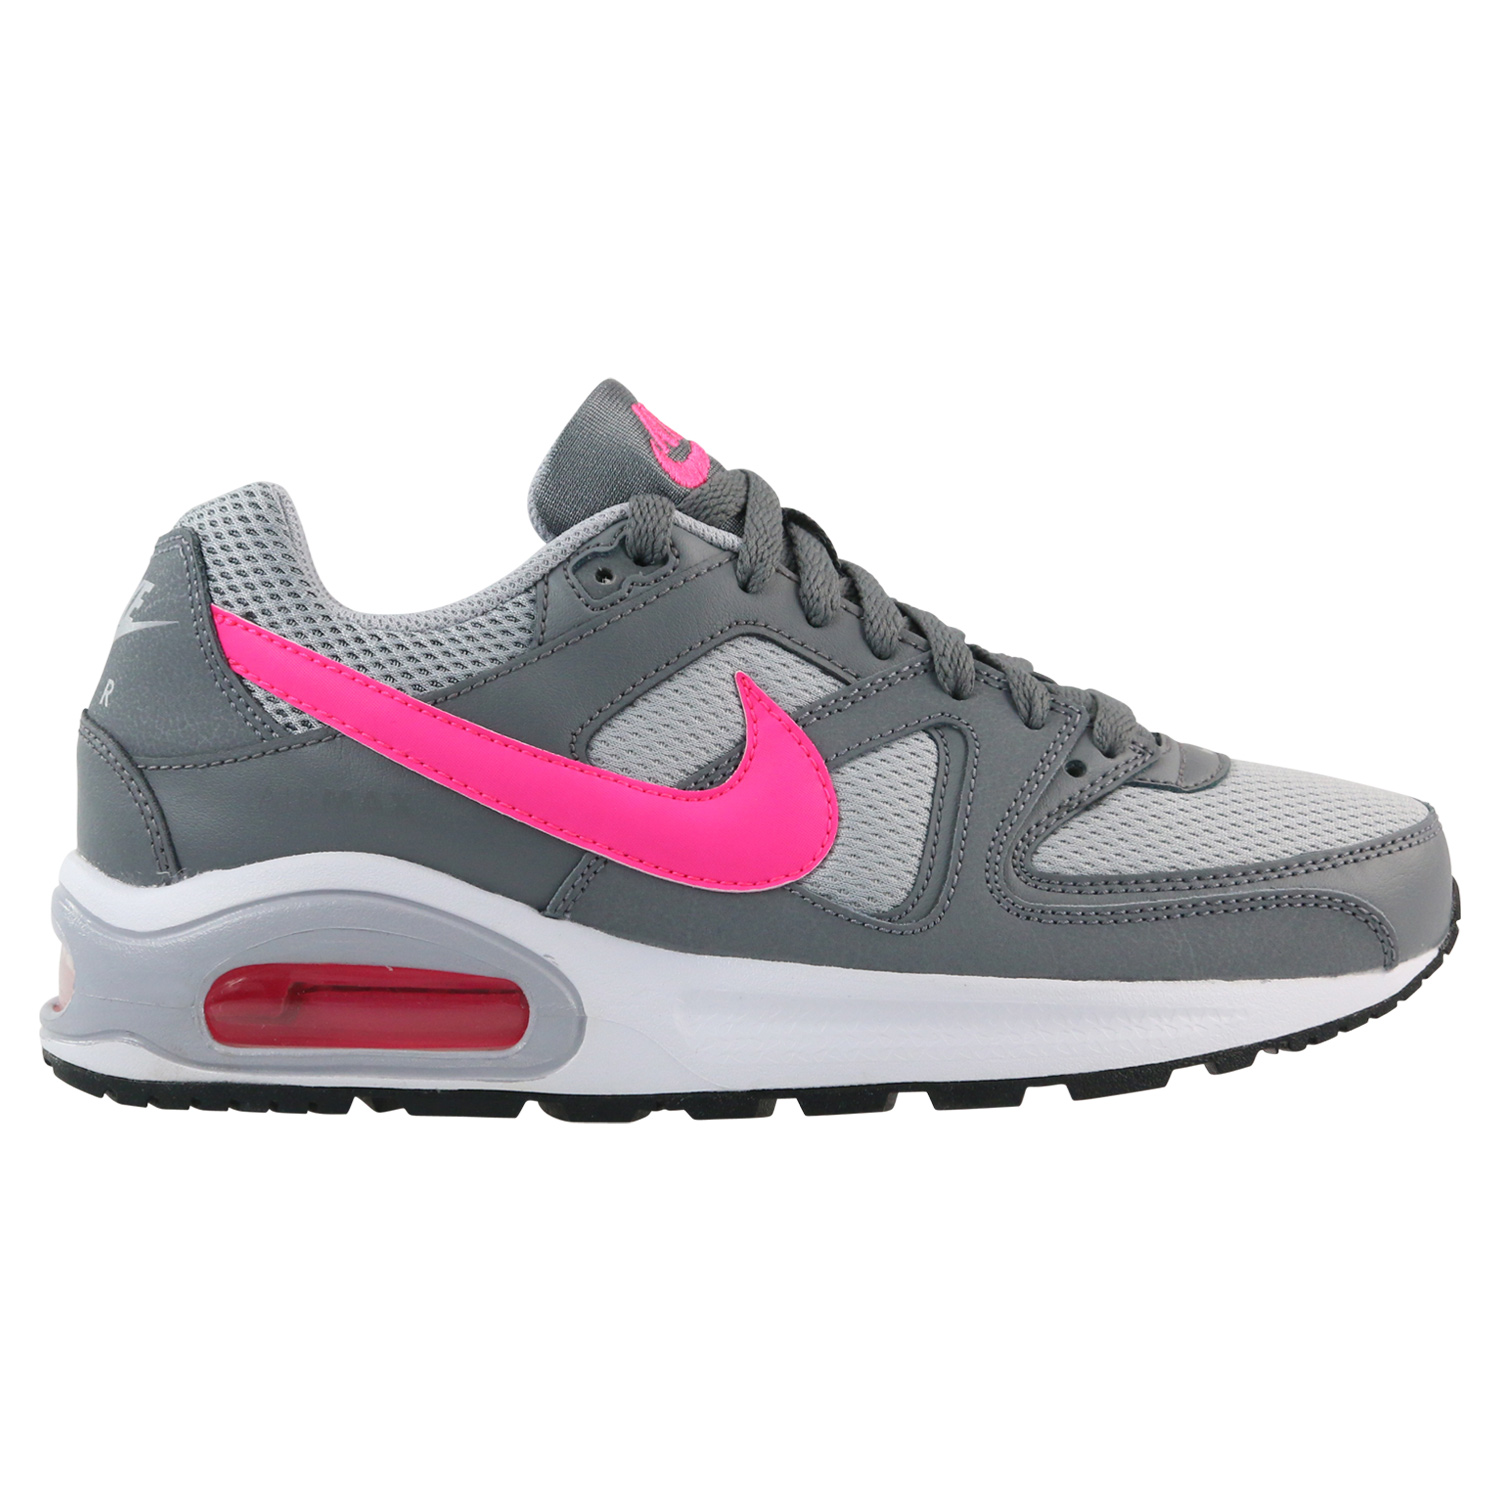 finest selection 71a8e 2cfe3 Air Max Command Flex (GS) Kinder. Nike